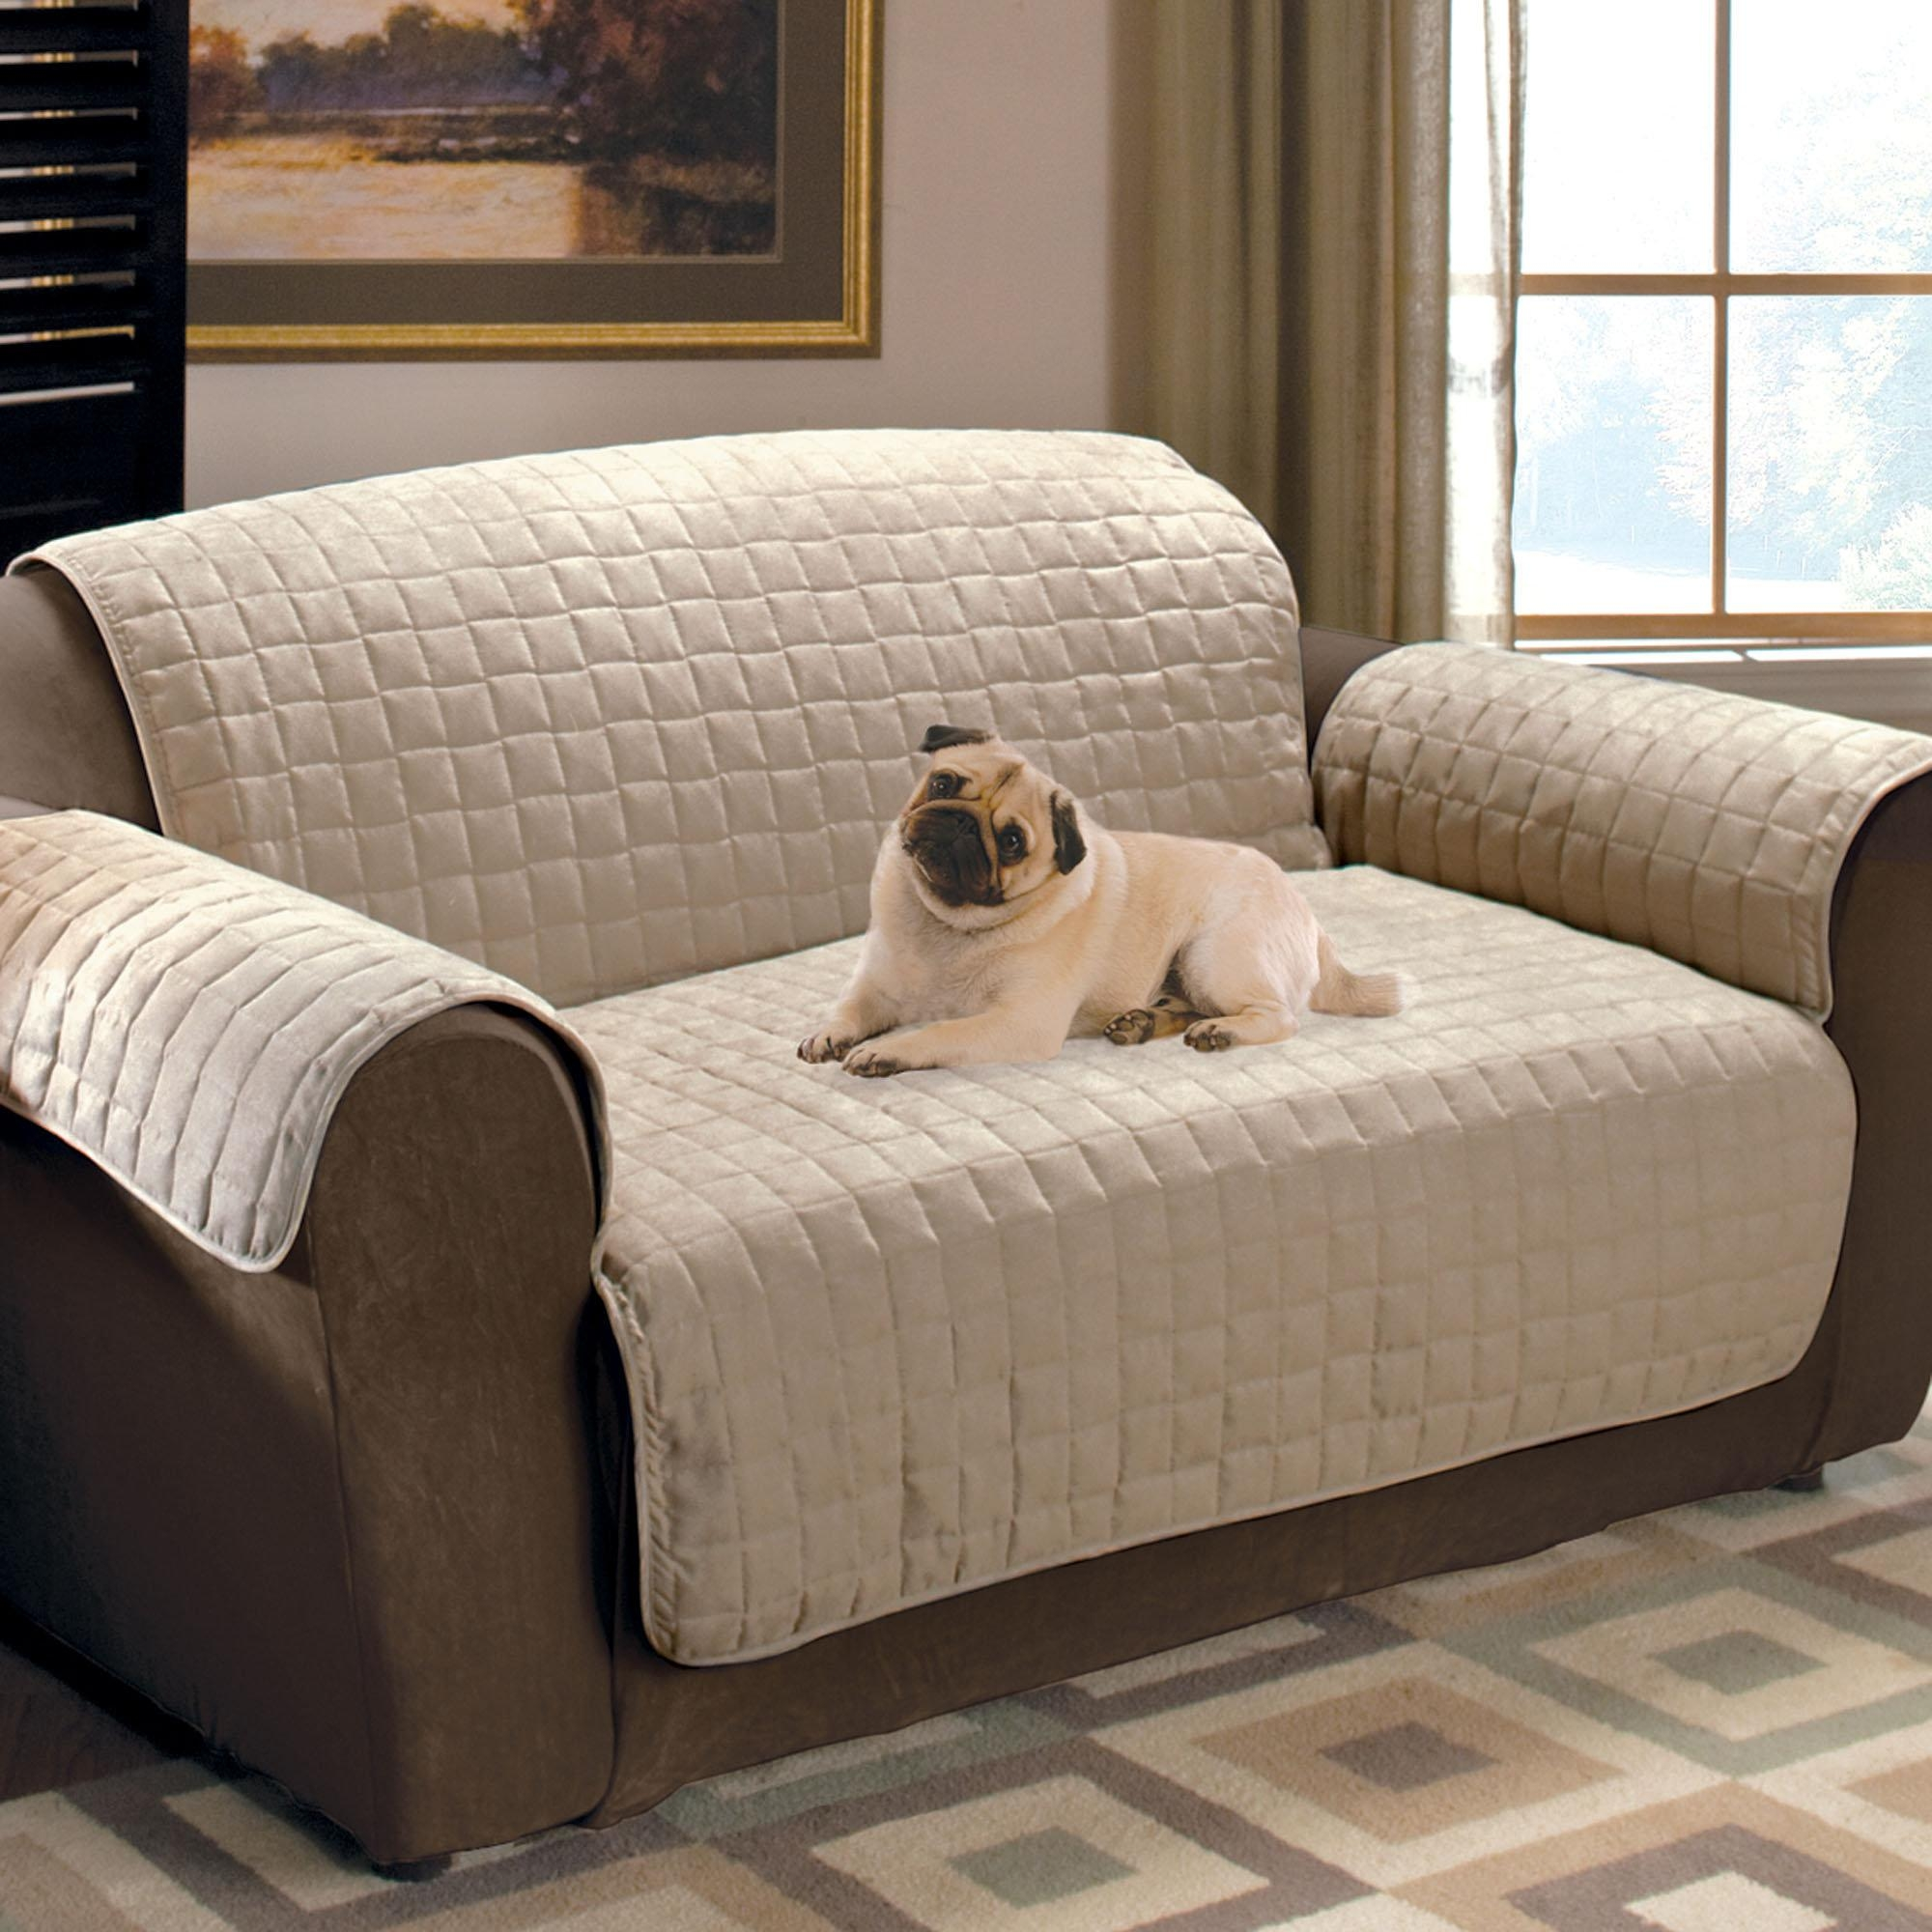 Furniture & Rug: Charming Slipcovers For Sofas With Cushions Inside Canvas Sofas Covers (Image 7 of 20)